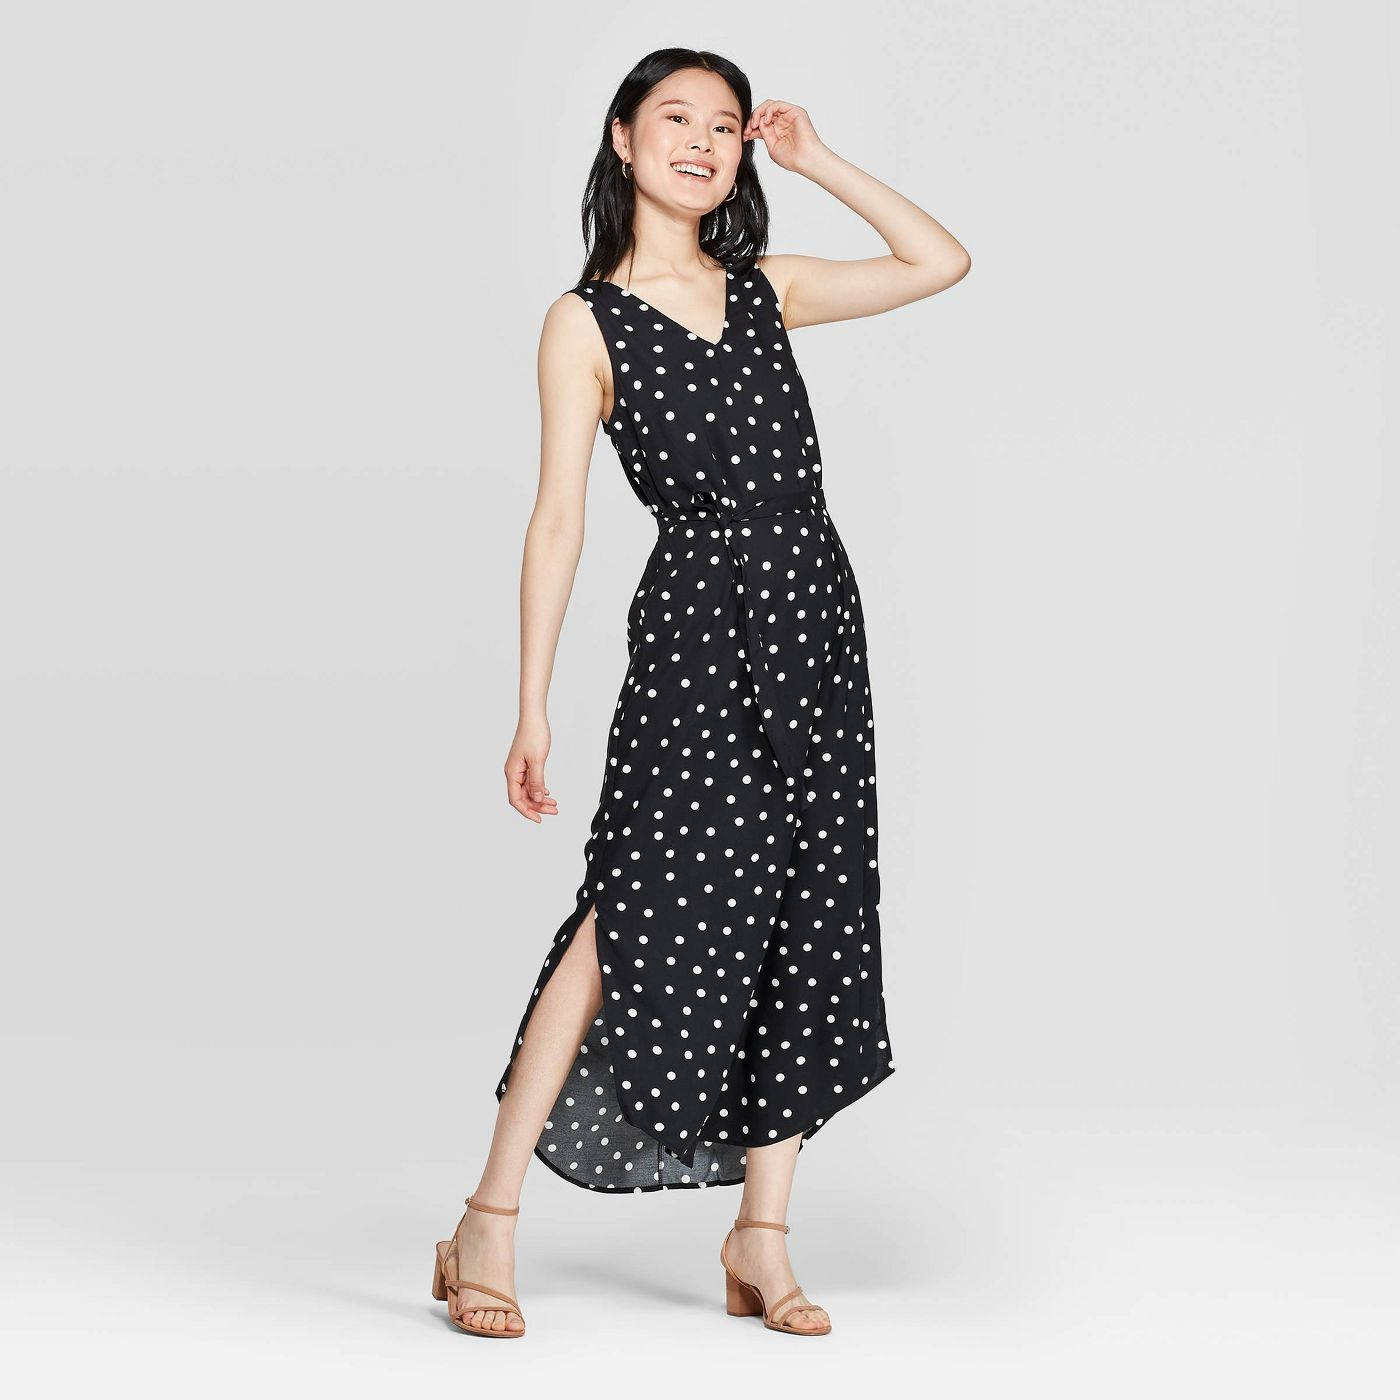 Women's Polka Dot Sleeveless V-Neck Maxi Dress - A New Day™ Black/White - image 1 of 3